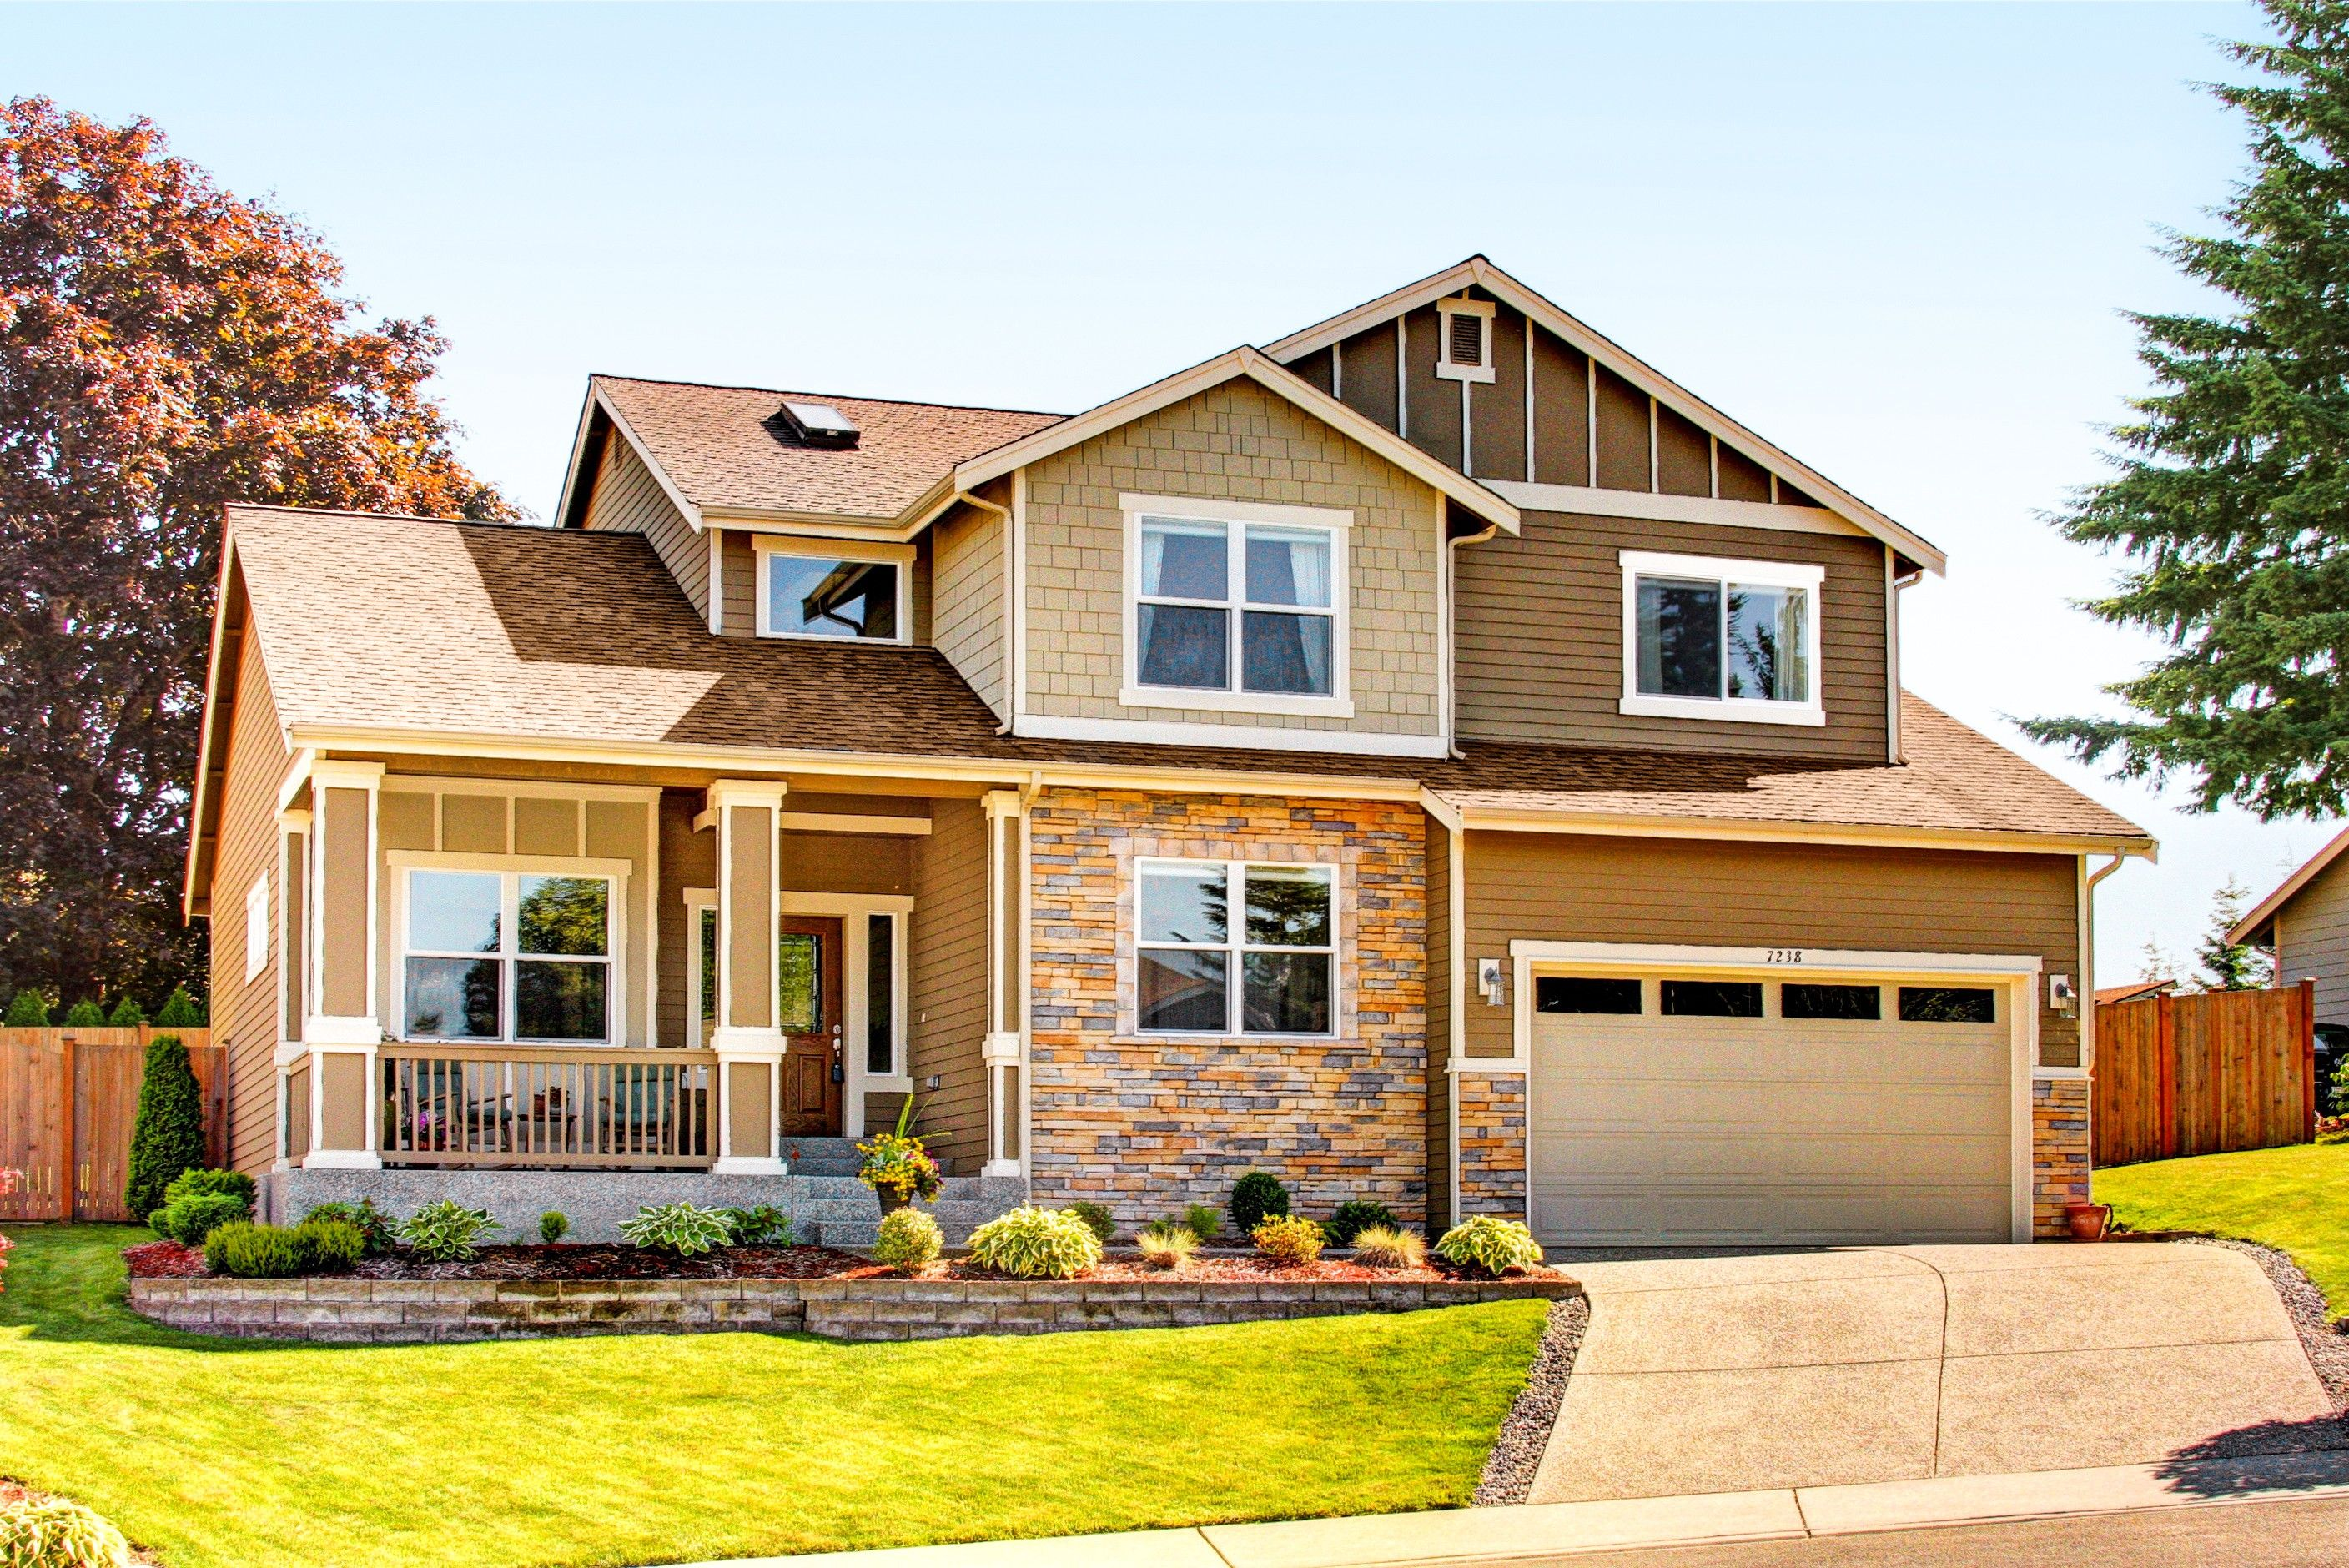 With years of experience in real estate field, we are presenting you Washington mansions for sale . Now, select international locations for your dream home. For more information, just take a look at our website.